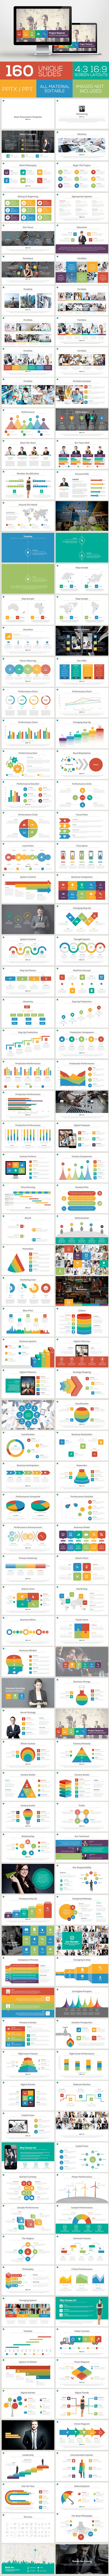 GraphicRiver Basic Powerpoint Template 10159360